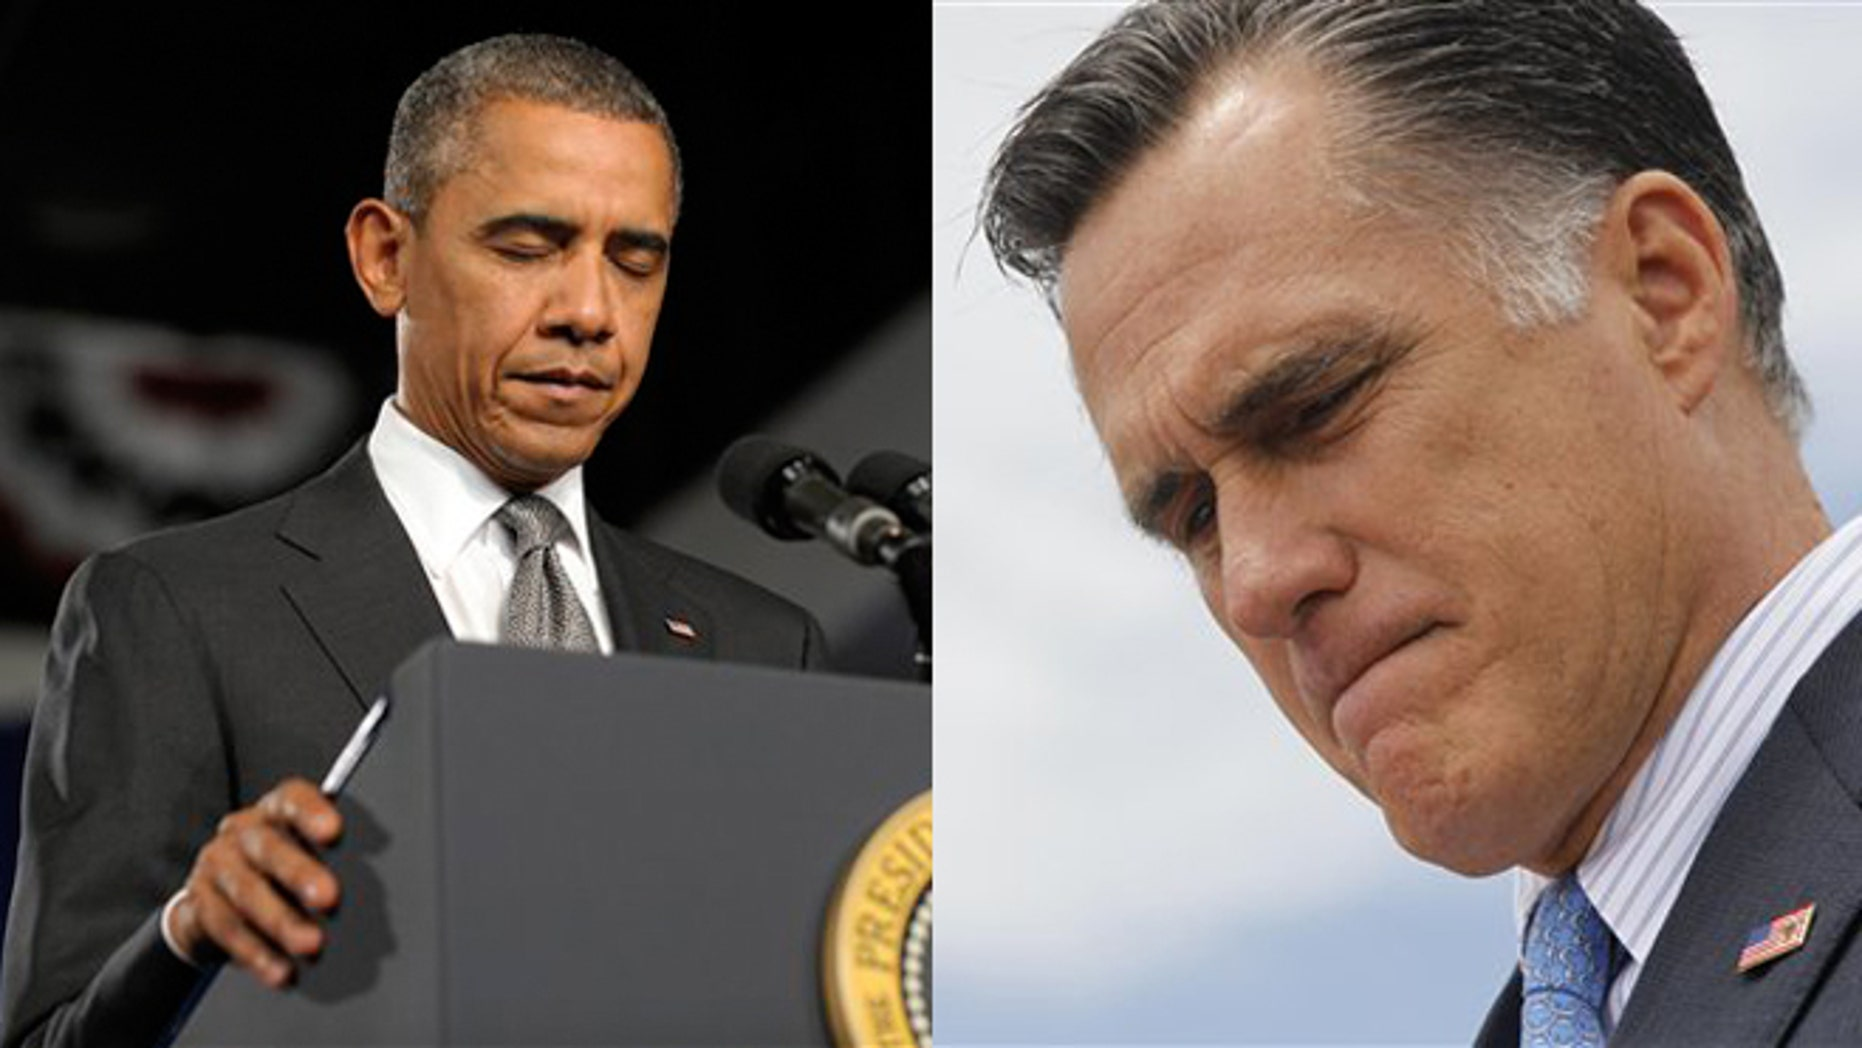 July 20, 2012: President Obama is shown in Fort Myers, Fla., while Mitt Romney is shown in Bow, N.H., addressing the Colorado mass shooting.